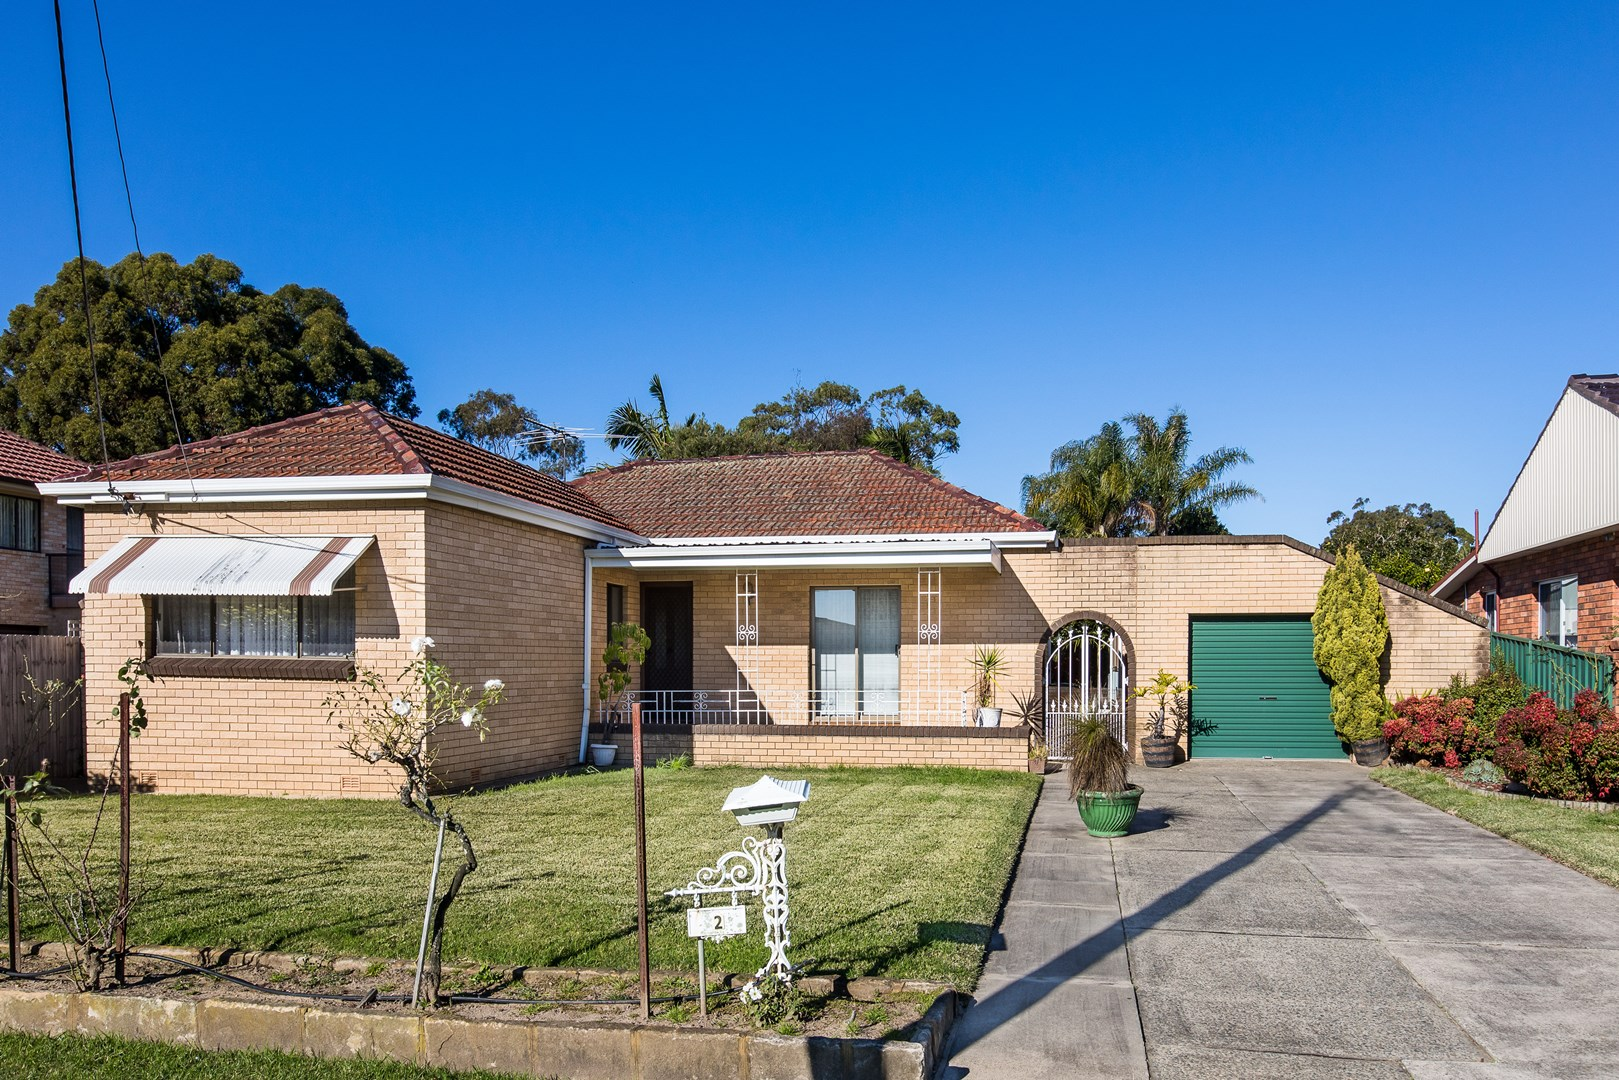 2 Frobisher Avenue Caringbah Nsw 2229 House For Sale